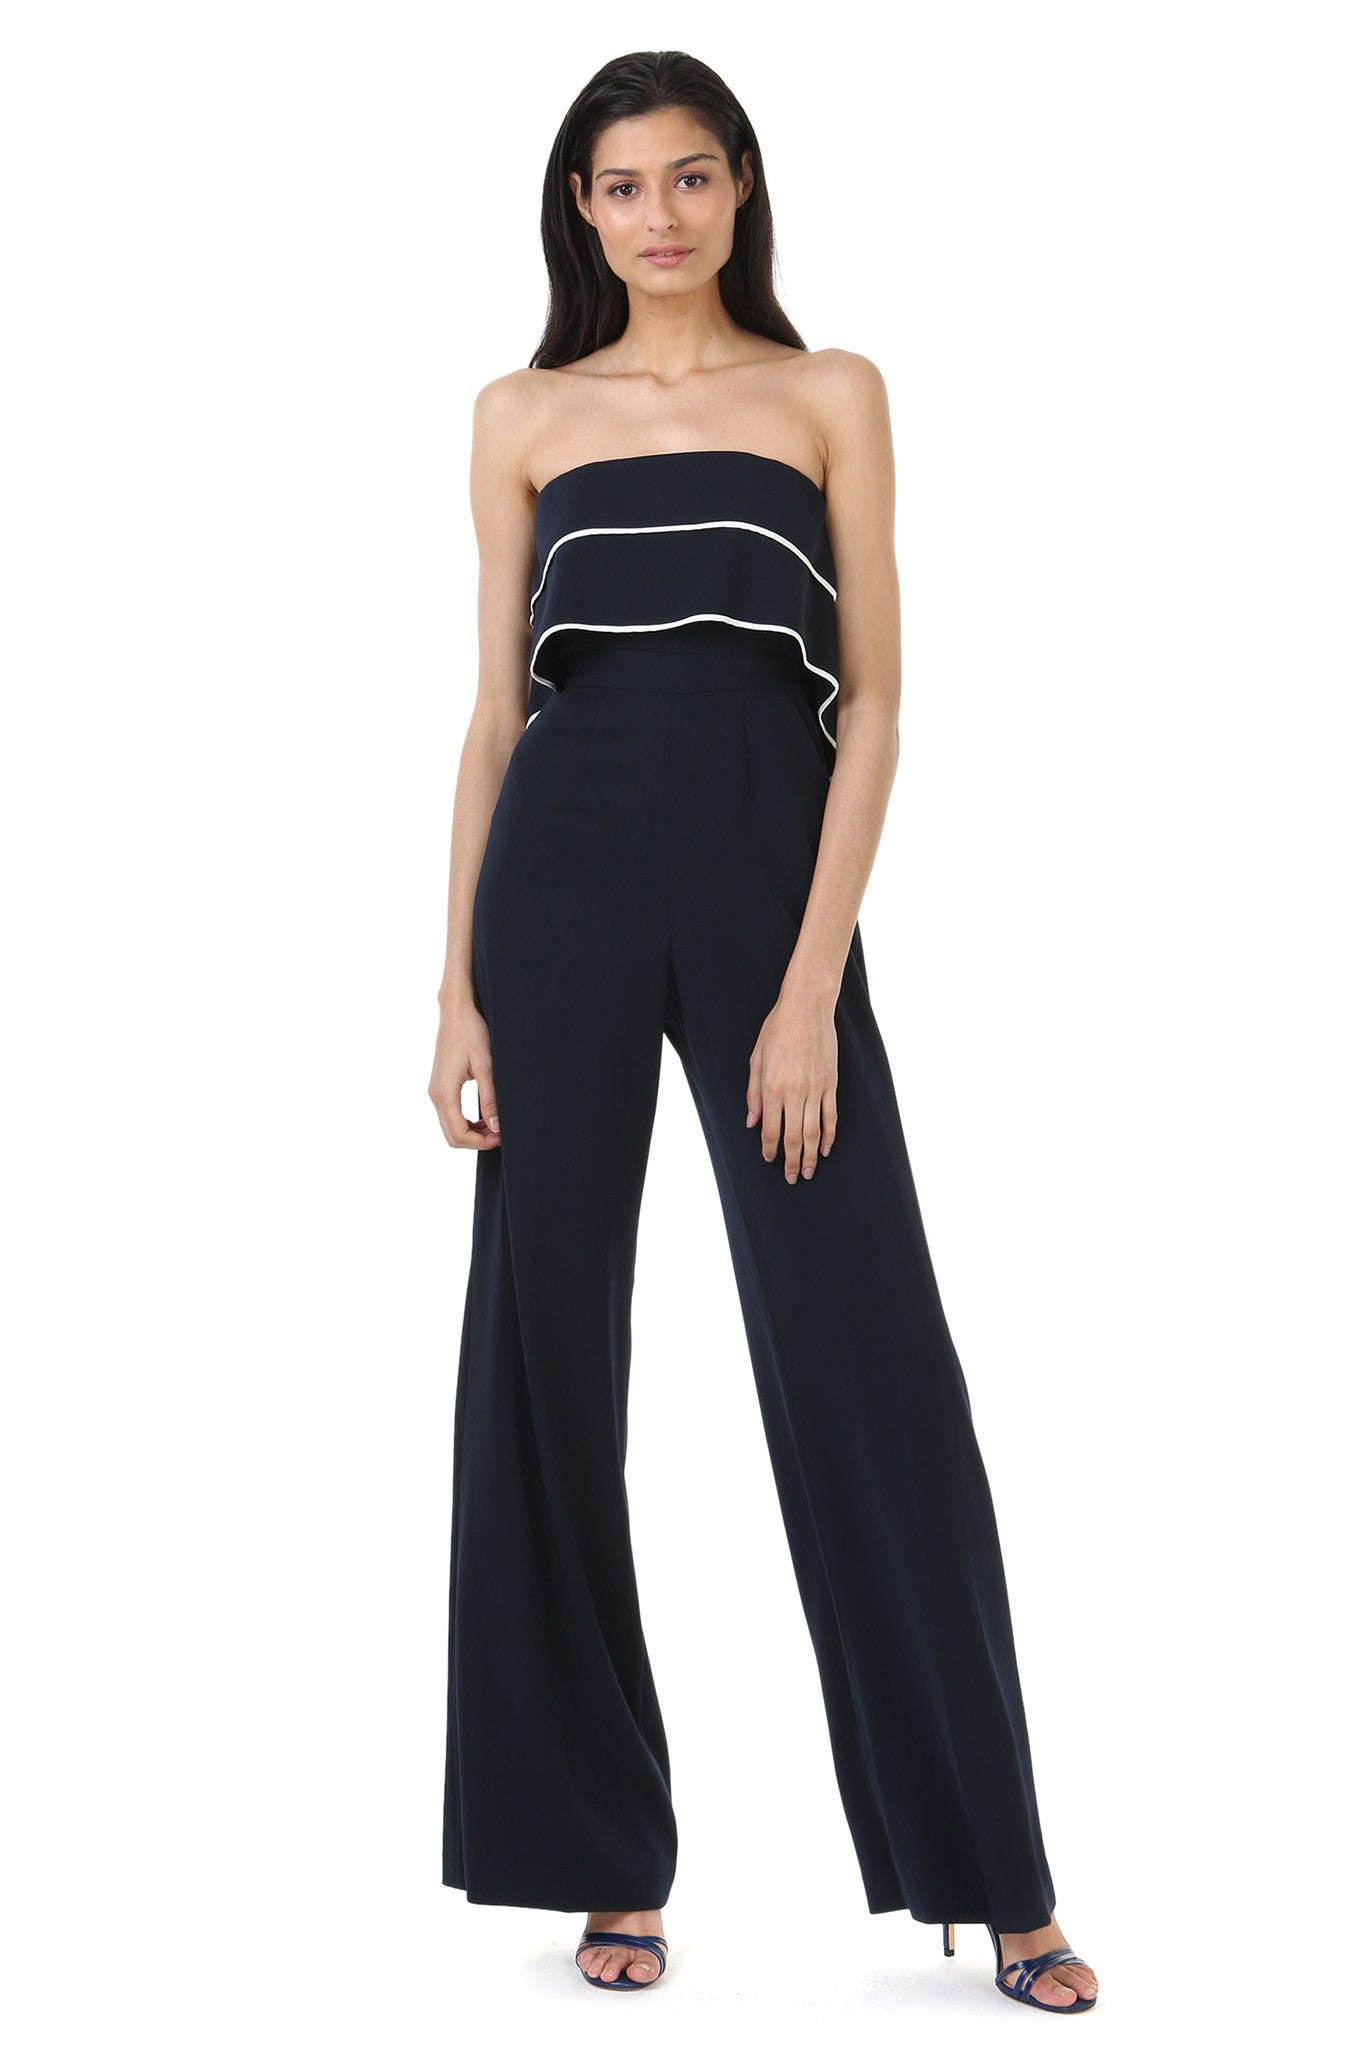 Strapless Navy Jumpsuit with Overlay - Front View